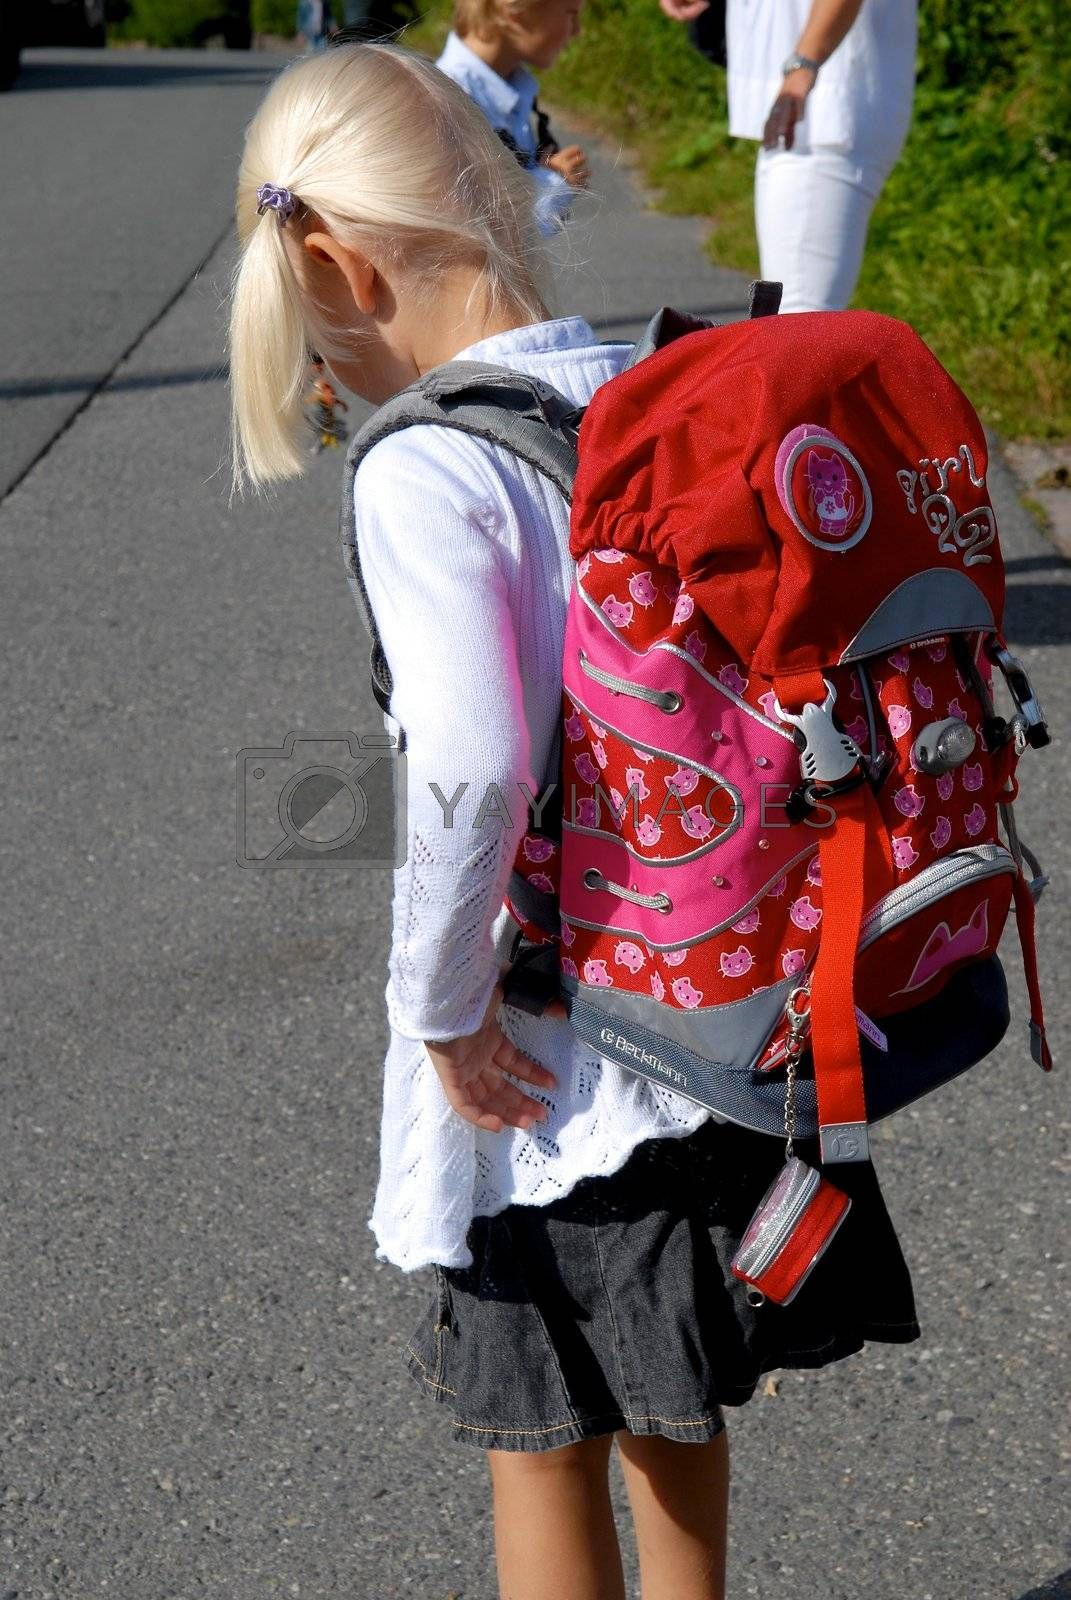 a girl with red schoolbag. Please note: No negative use allowed.